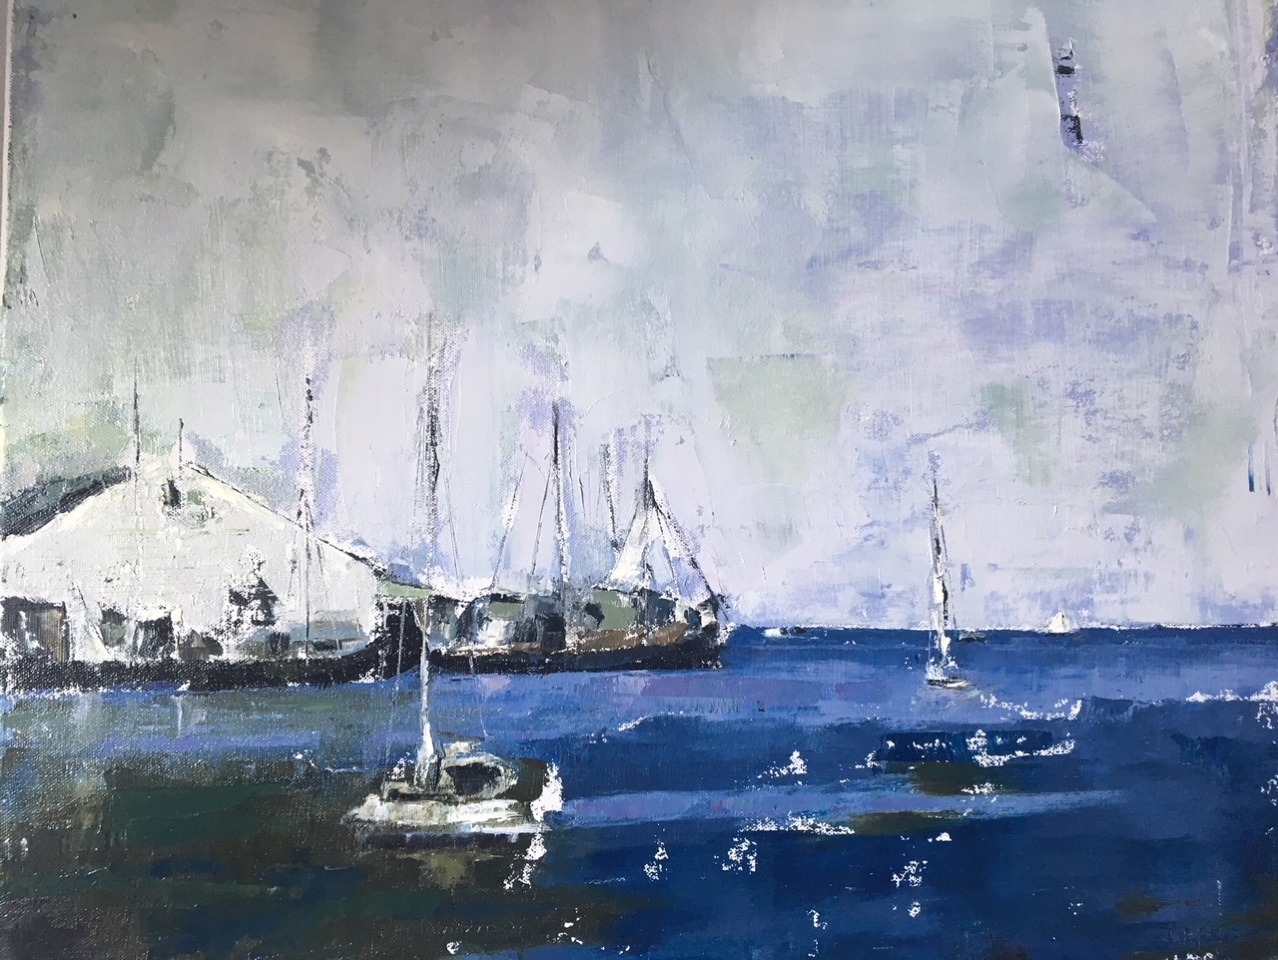 Blue Sea (oil on canvas) by artist Kathleen Gefell, New York